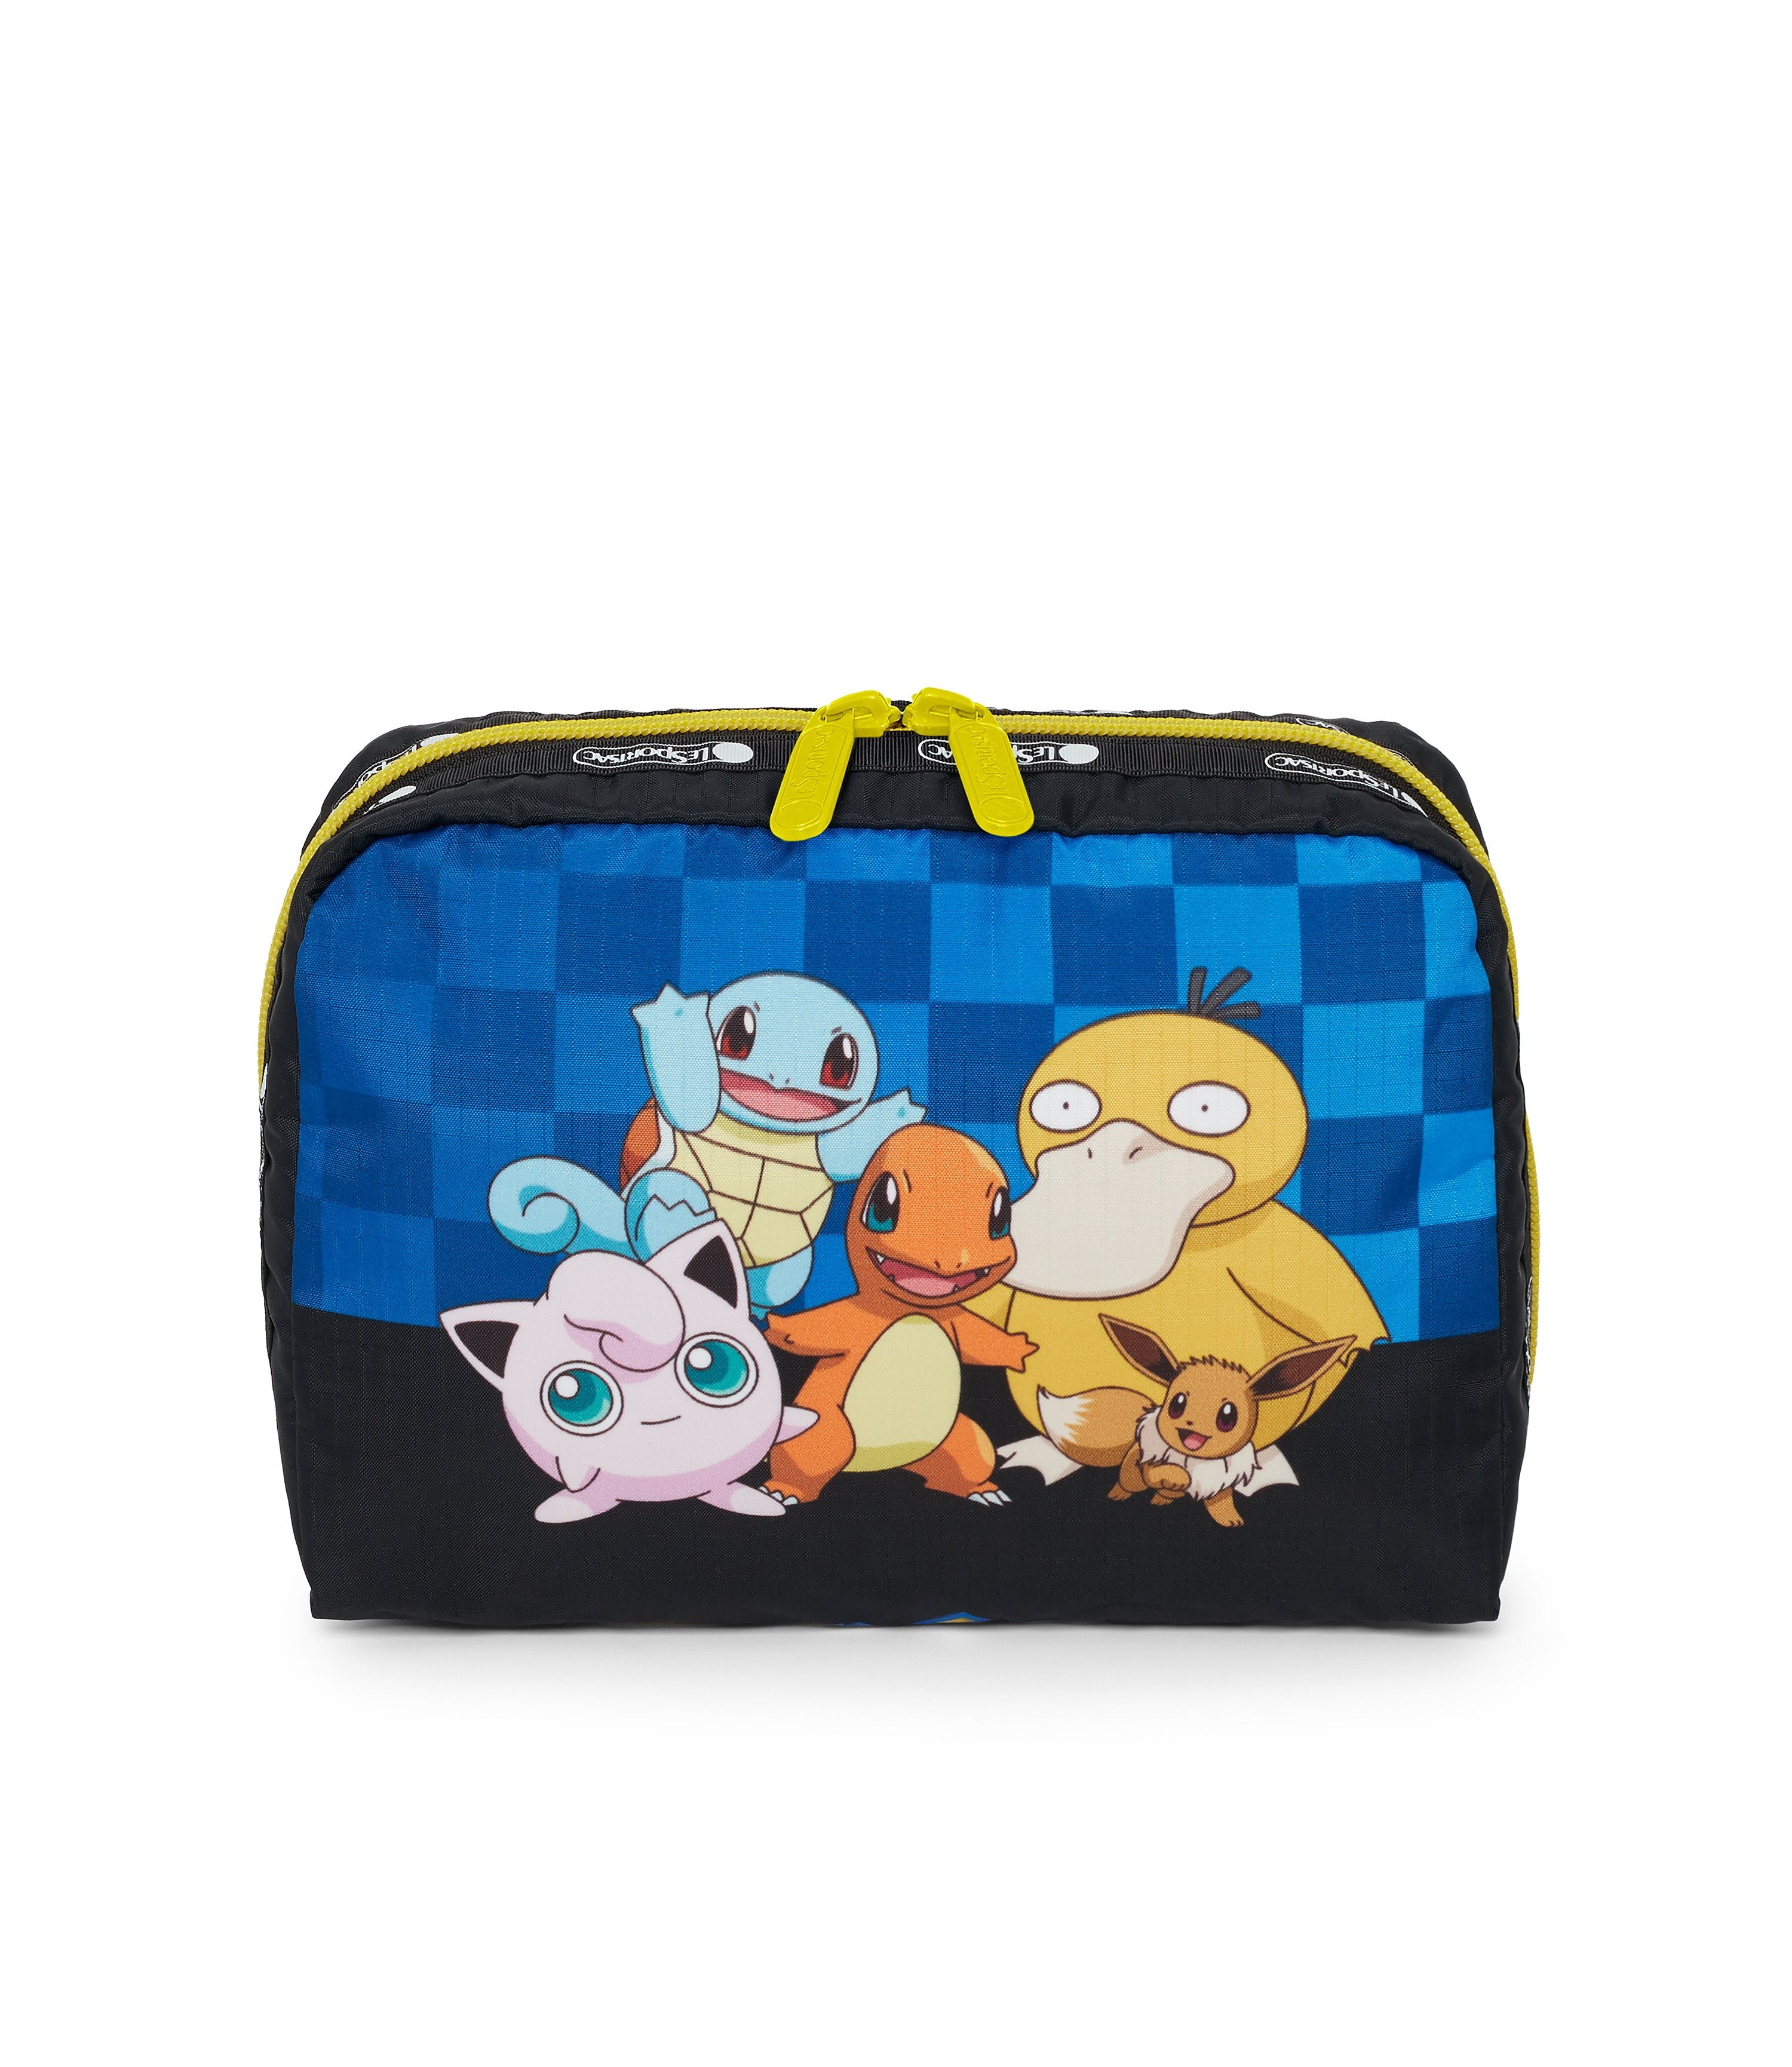 Pokémon XL Rectangular Cosmetic Bag- LeSportsac-Extra Large-Accessory-Charmander-Squirtle-Eevee-PsychDuck-Jigglypuff